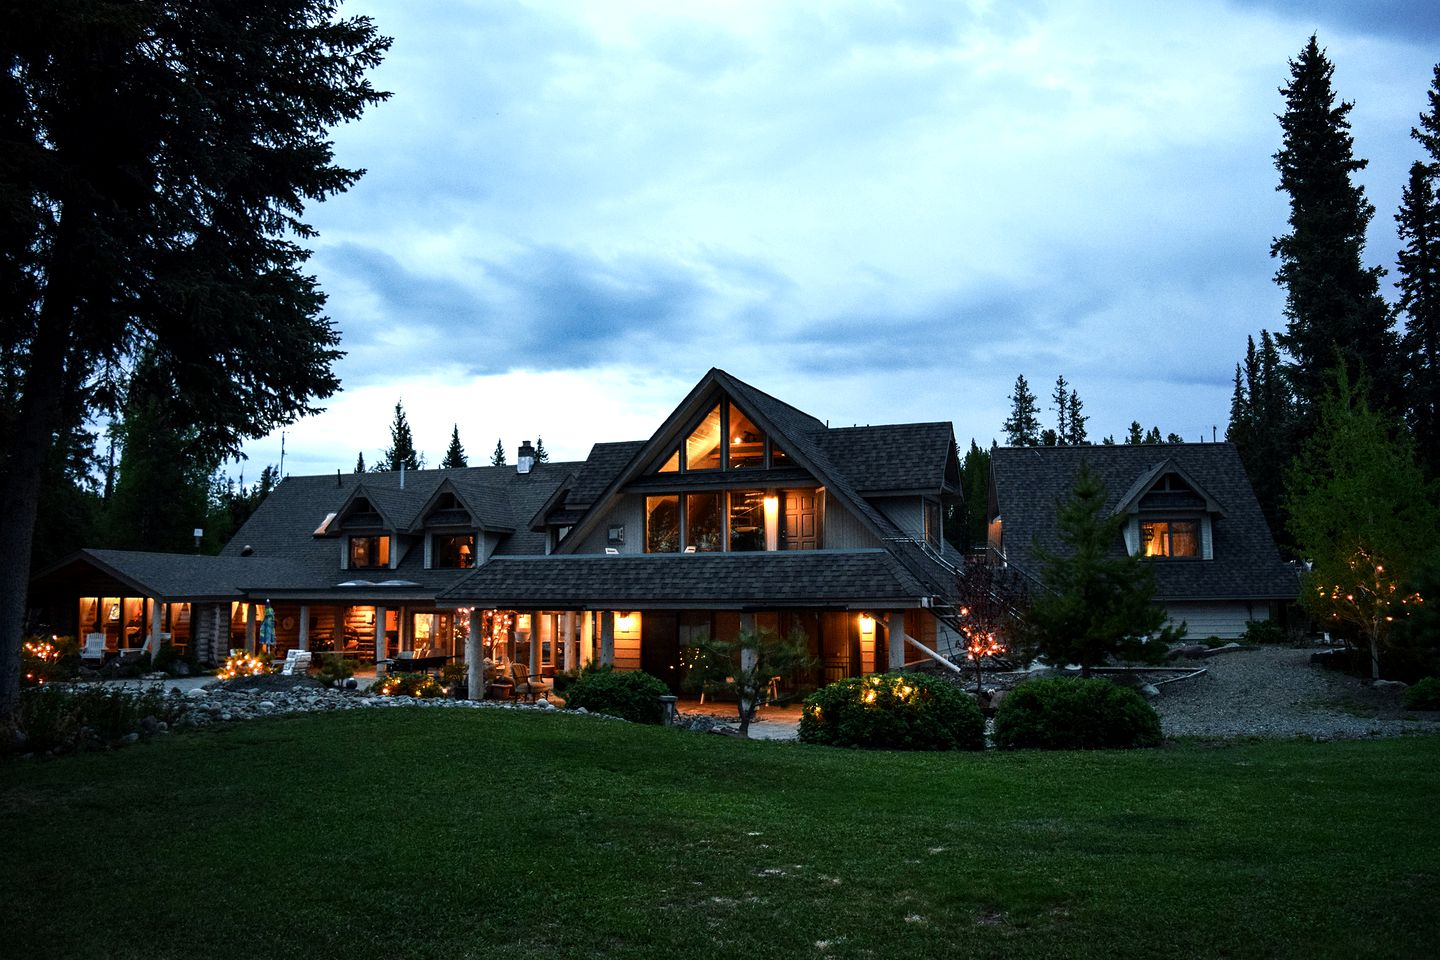 Nature Lodges (Nimpo Lake, British Columbia, Canada)